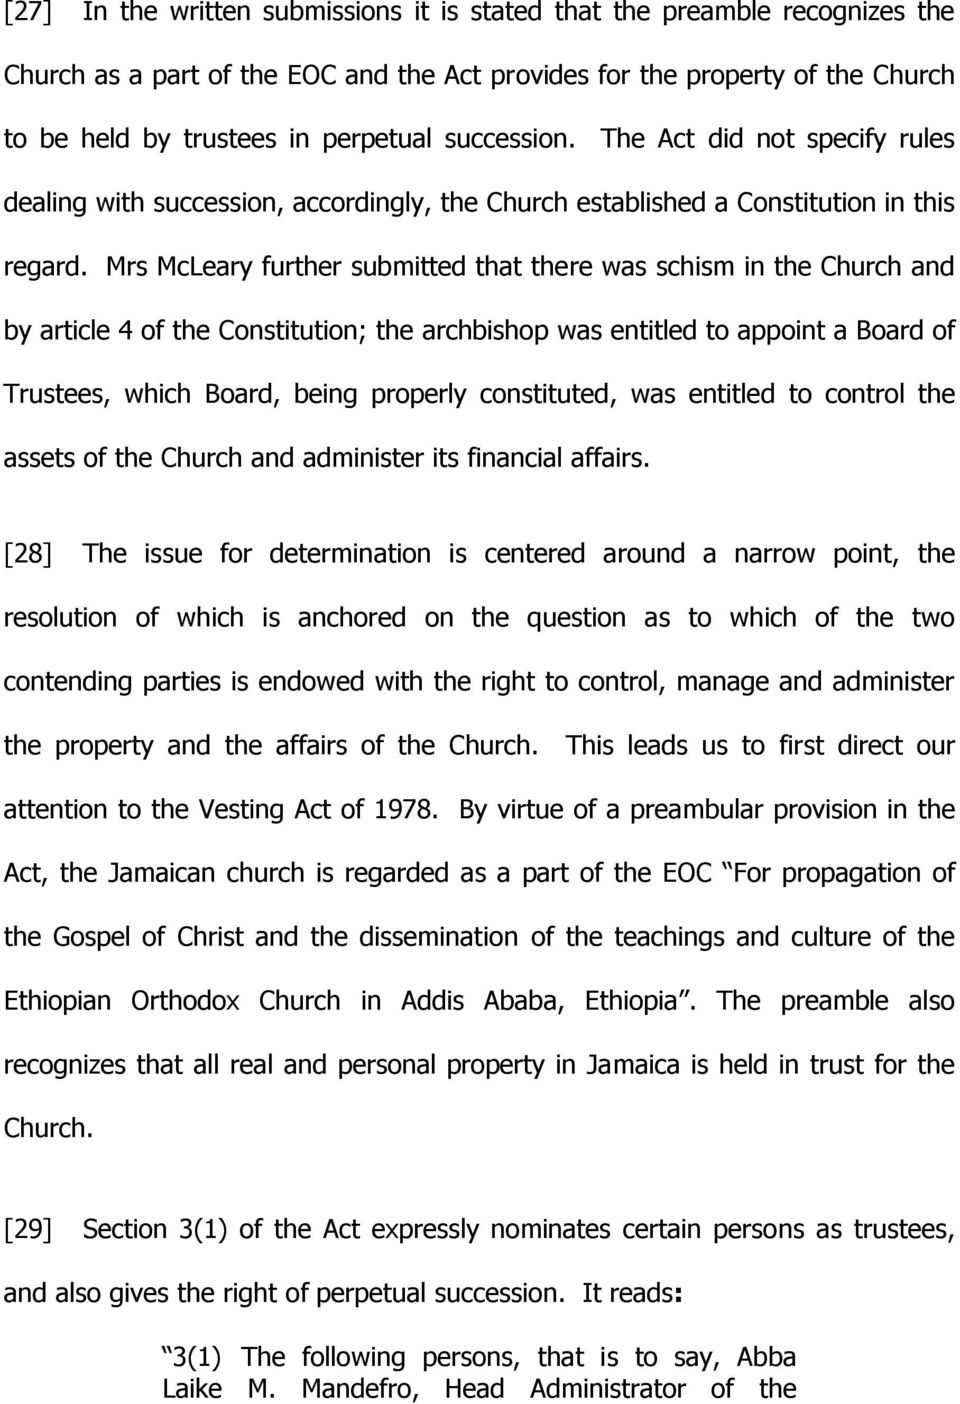 Mrs McLeary further submitted that there was schism in the Church and by article 4 of the Constitution; the archbishop was entitled to appoint a Board of Trustees, which Board, being properly